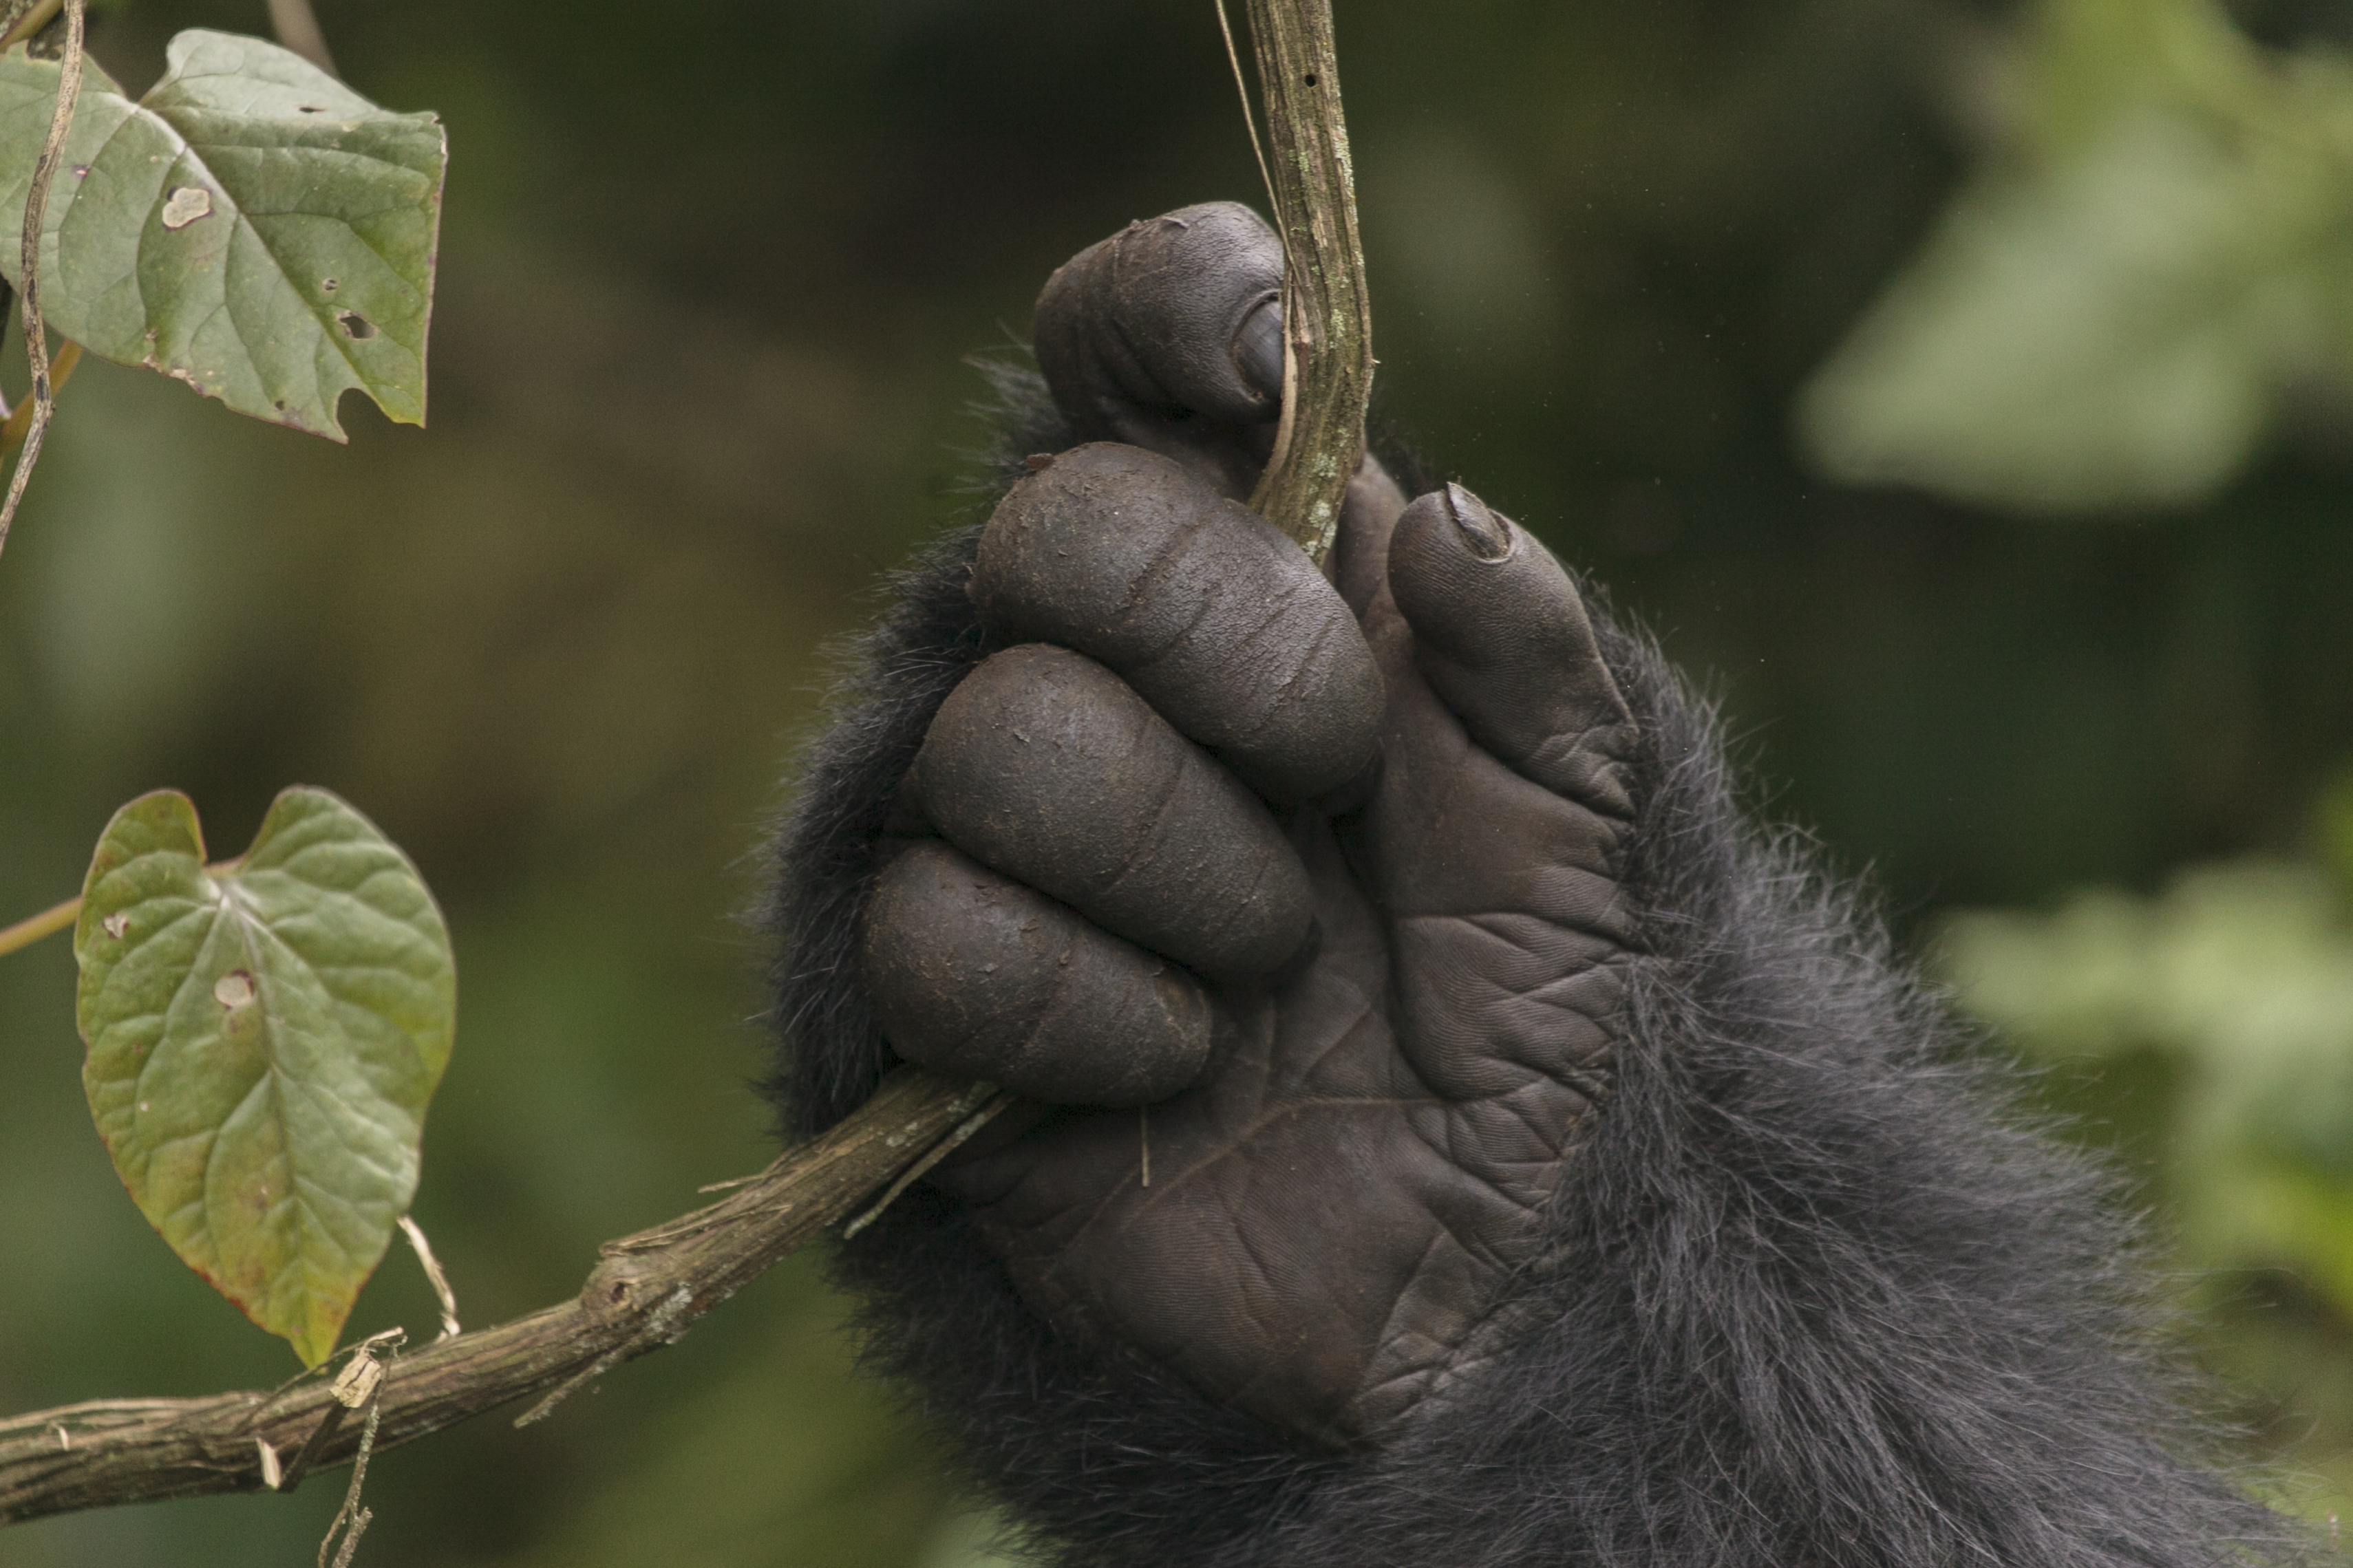 Plausible thumb seperates human from ape